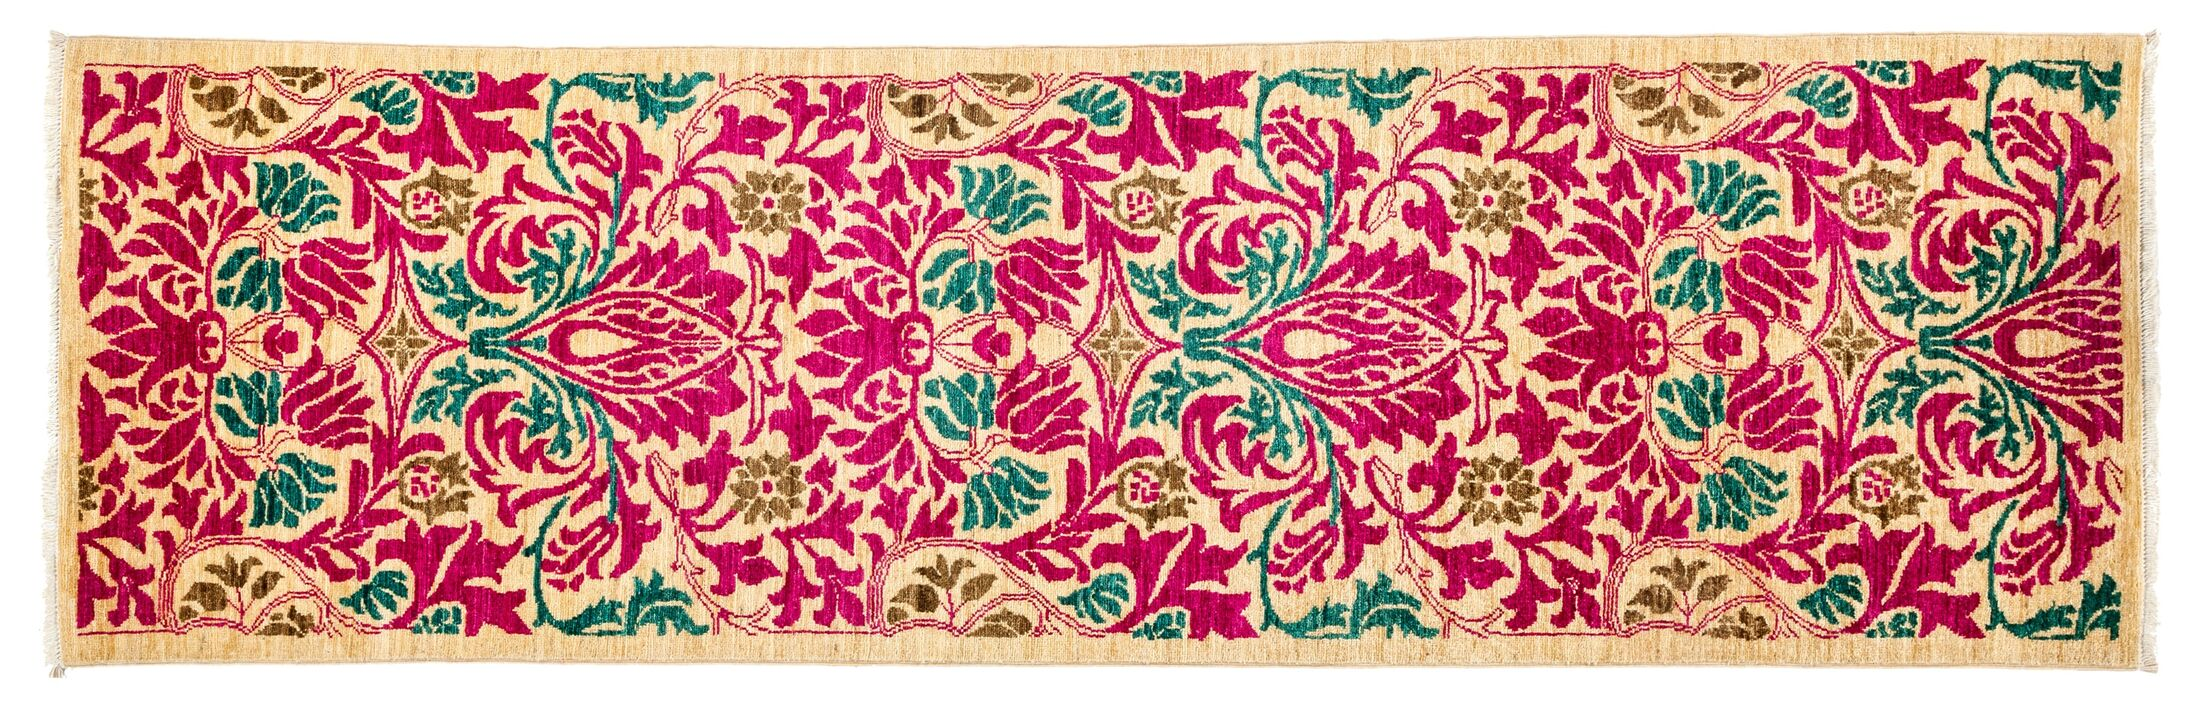 One-of-a-Kind Arts and Crafts Hand-Knotted Pink Area Rug Rug Size: Runner 2'7